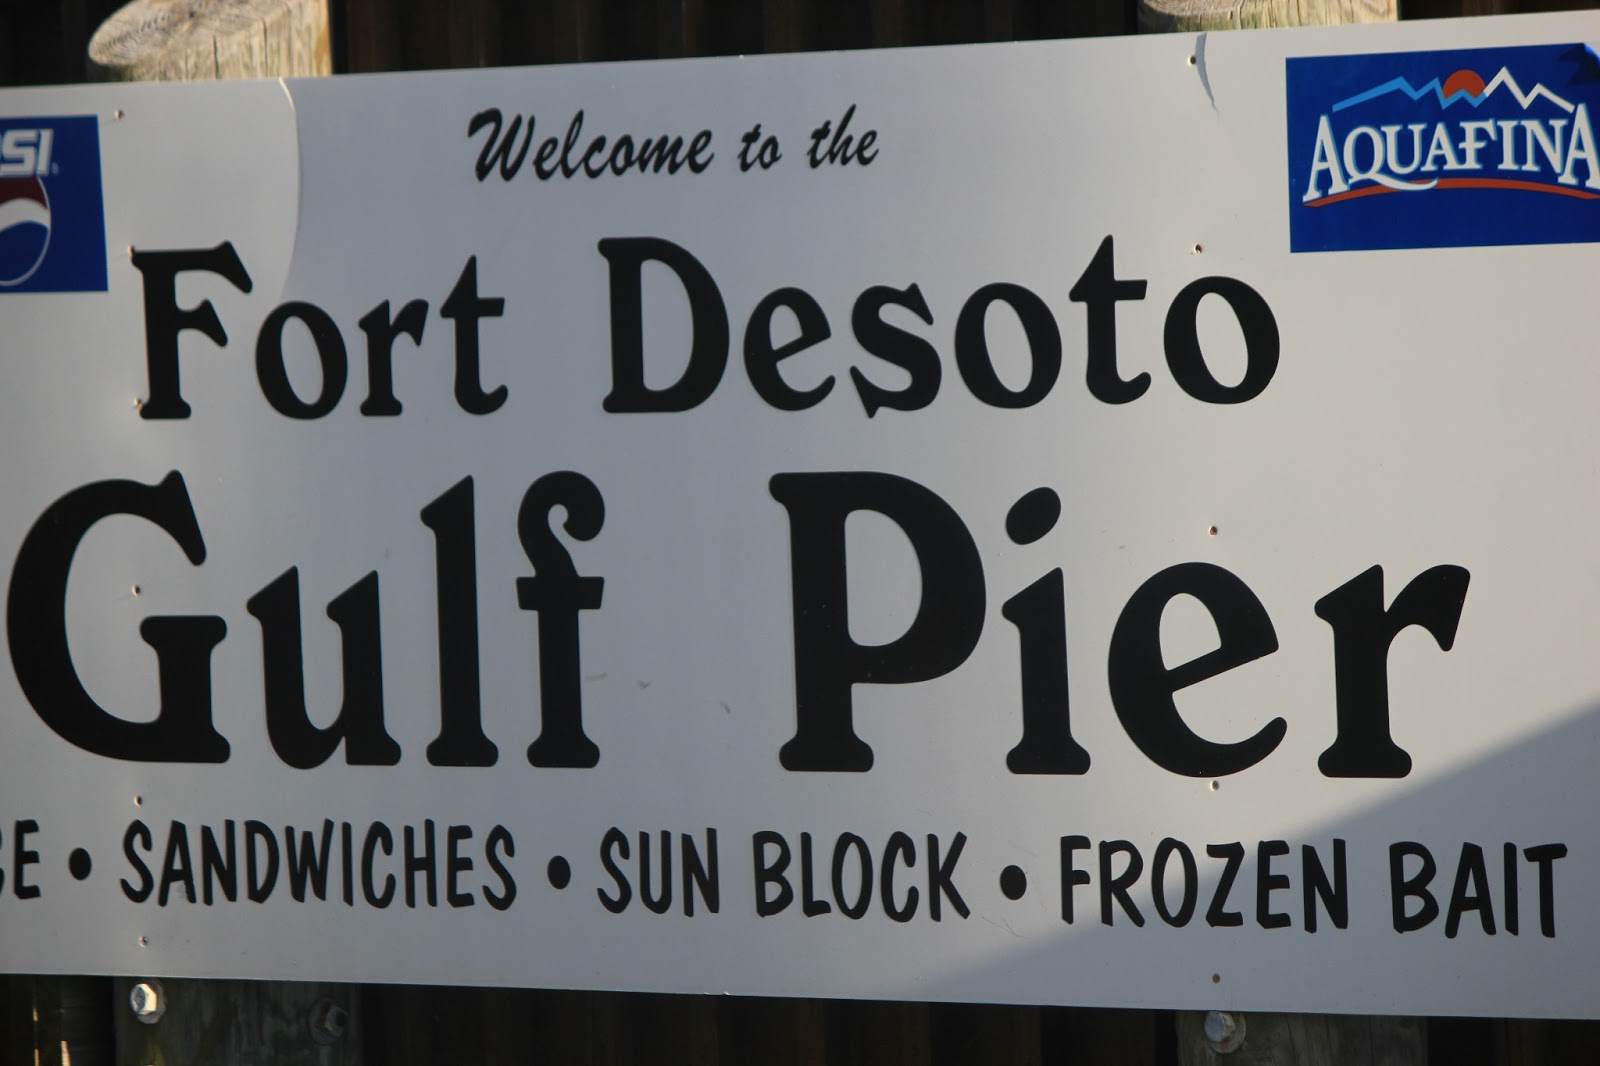 Pinellas county parks fort de soto park gulf pier welcome sign nvjuhfo Image collections